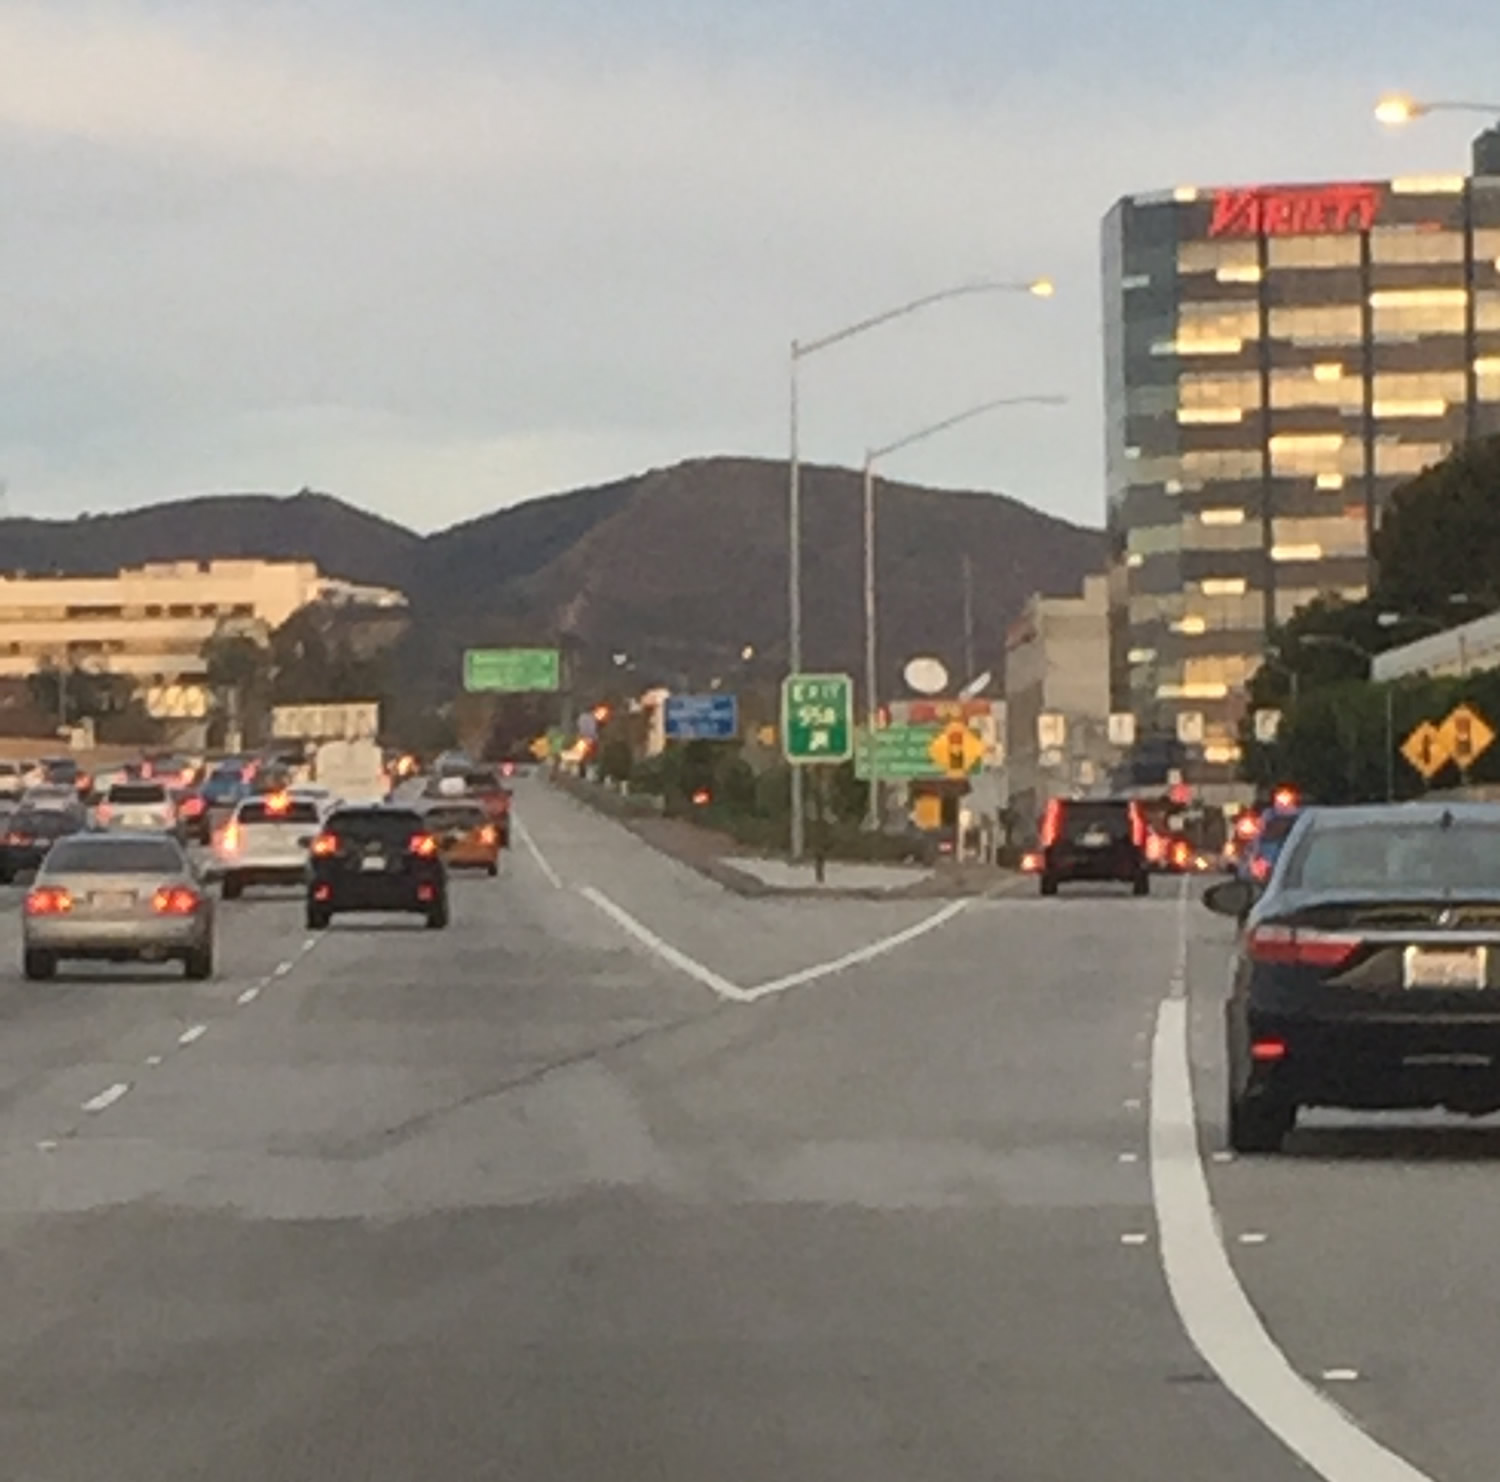 Image 12. A low peak in the Santa Monica Mountain Range as seen from inside a car on the 405 Freeway driving north, Los Angeles, California, USA. Photo by Adelle Hersh, January, 13, 2016. Used with permission of Adelle Hersh.